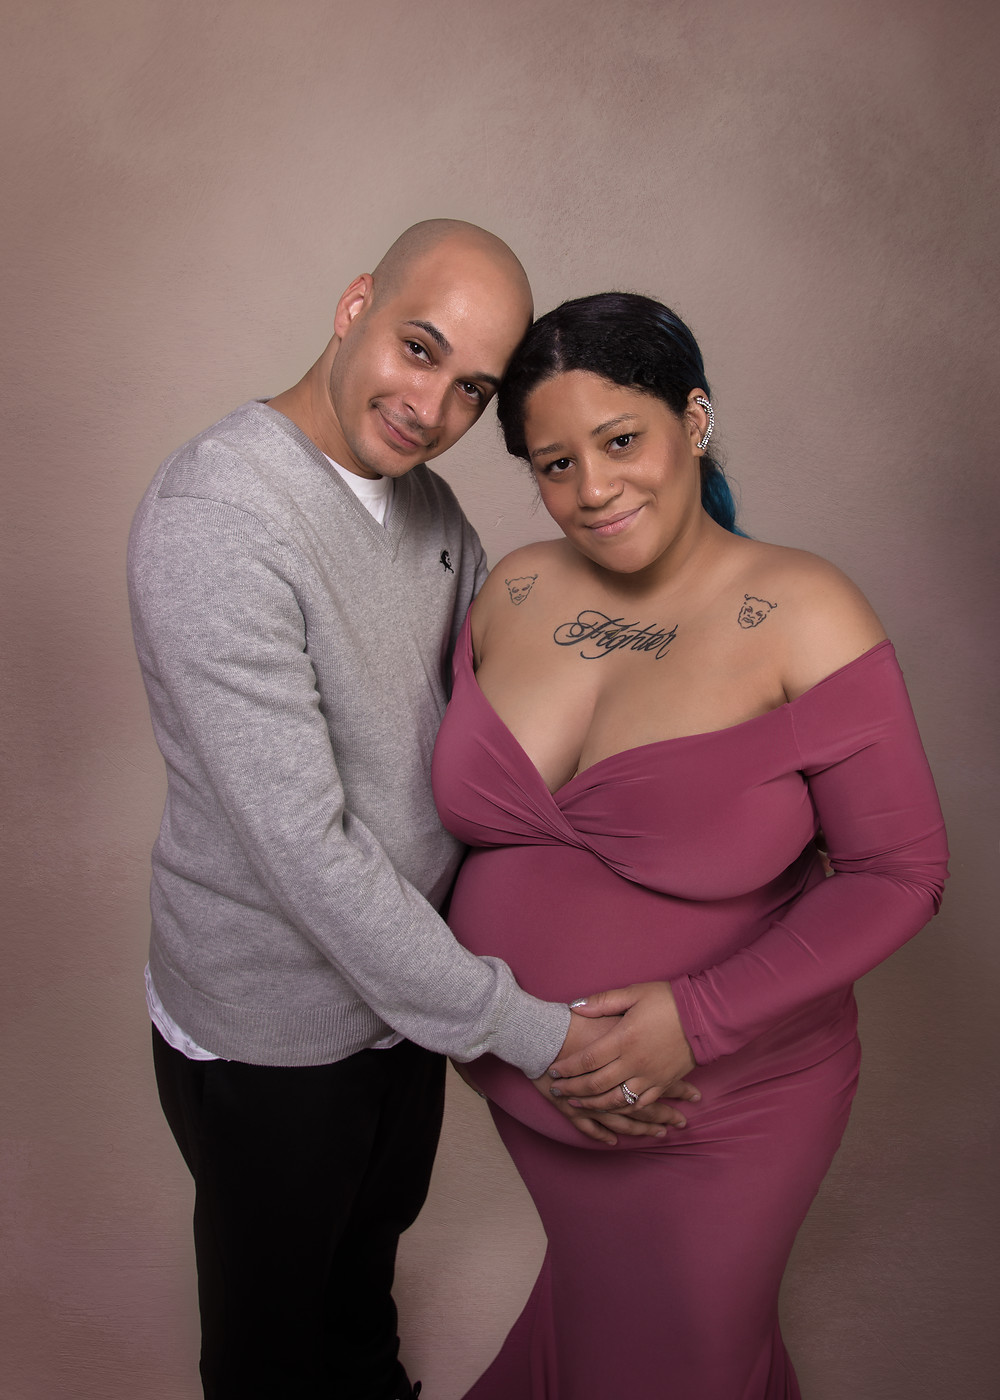 We provide maternity, newborn and family photography in our Portland, Maine photography studio.